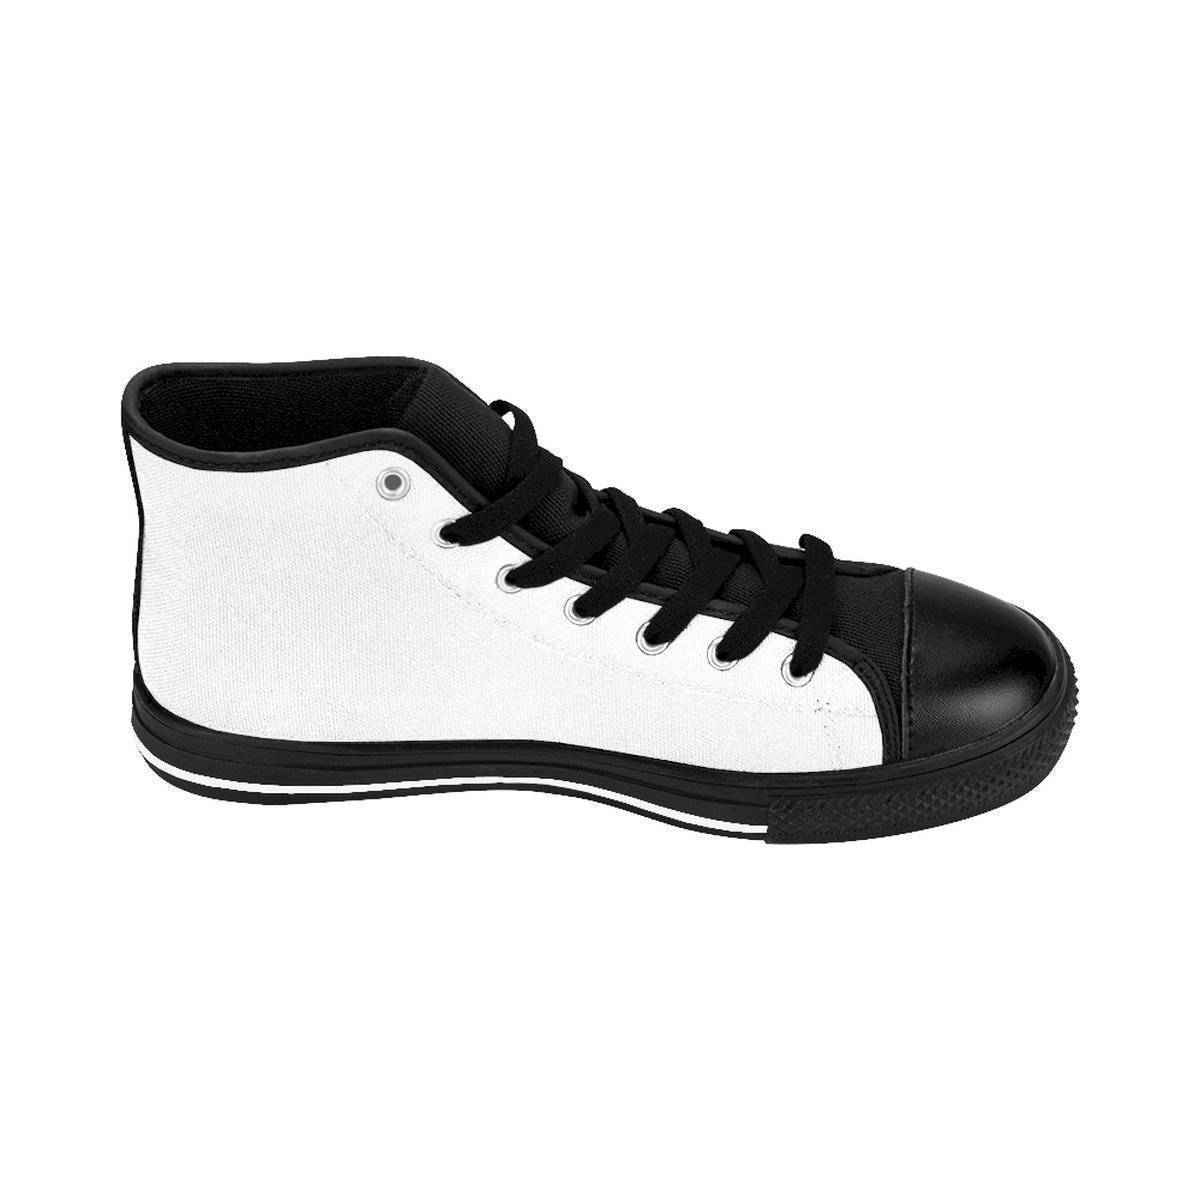 Anglohili Men's High-top Sneakers